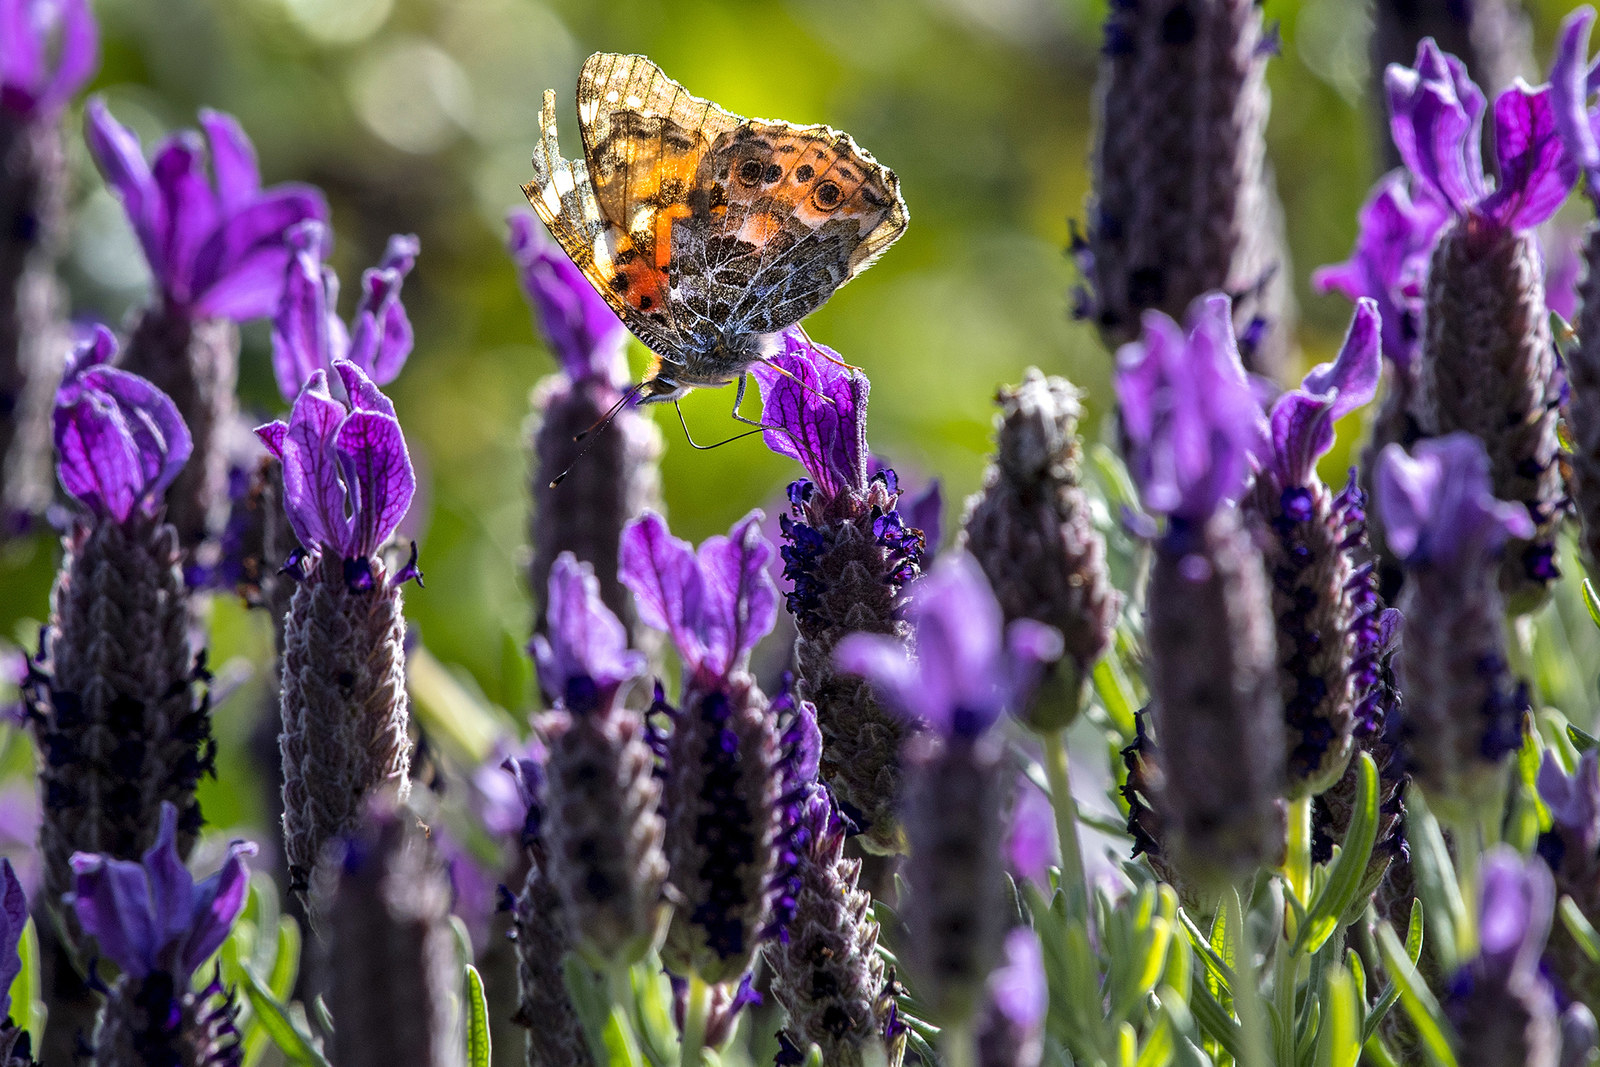 A painted lady butterfly lands on a flower in North Tustin, California, March 13.